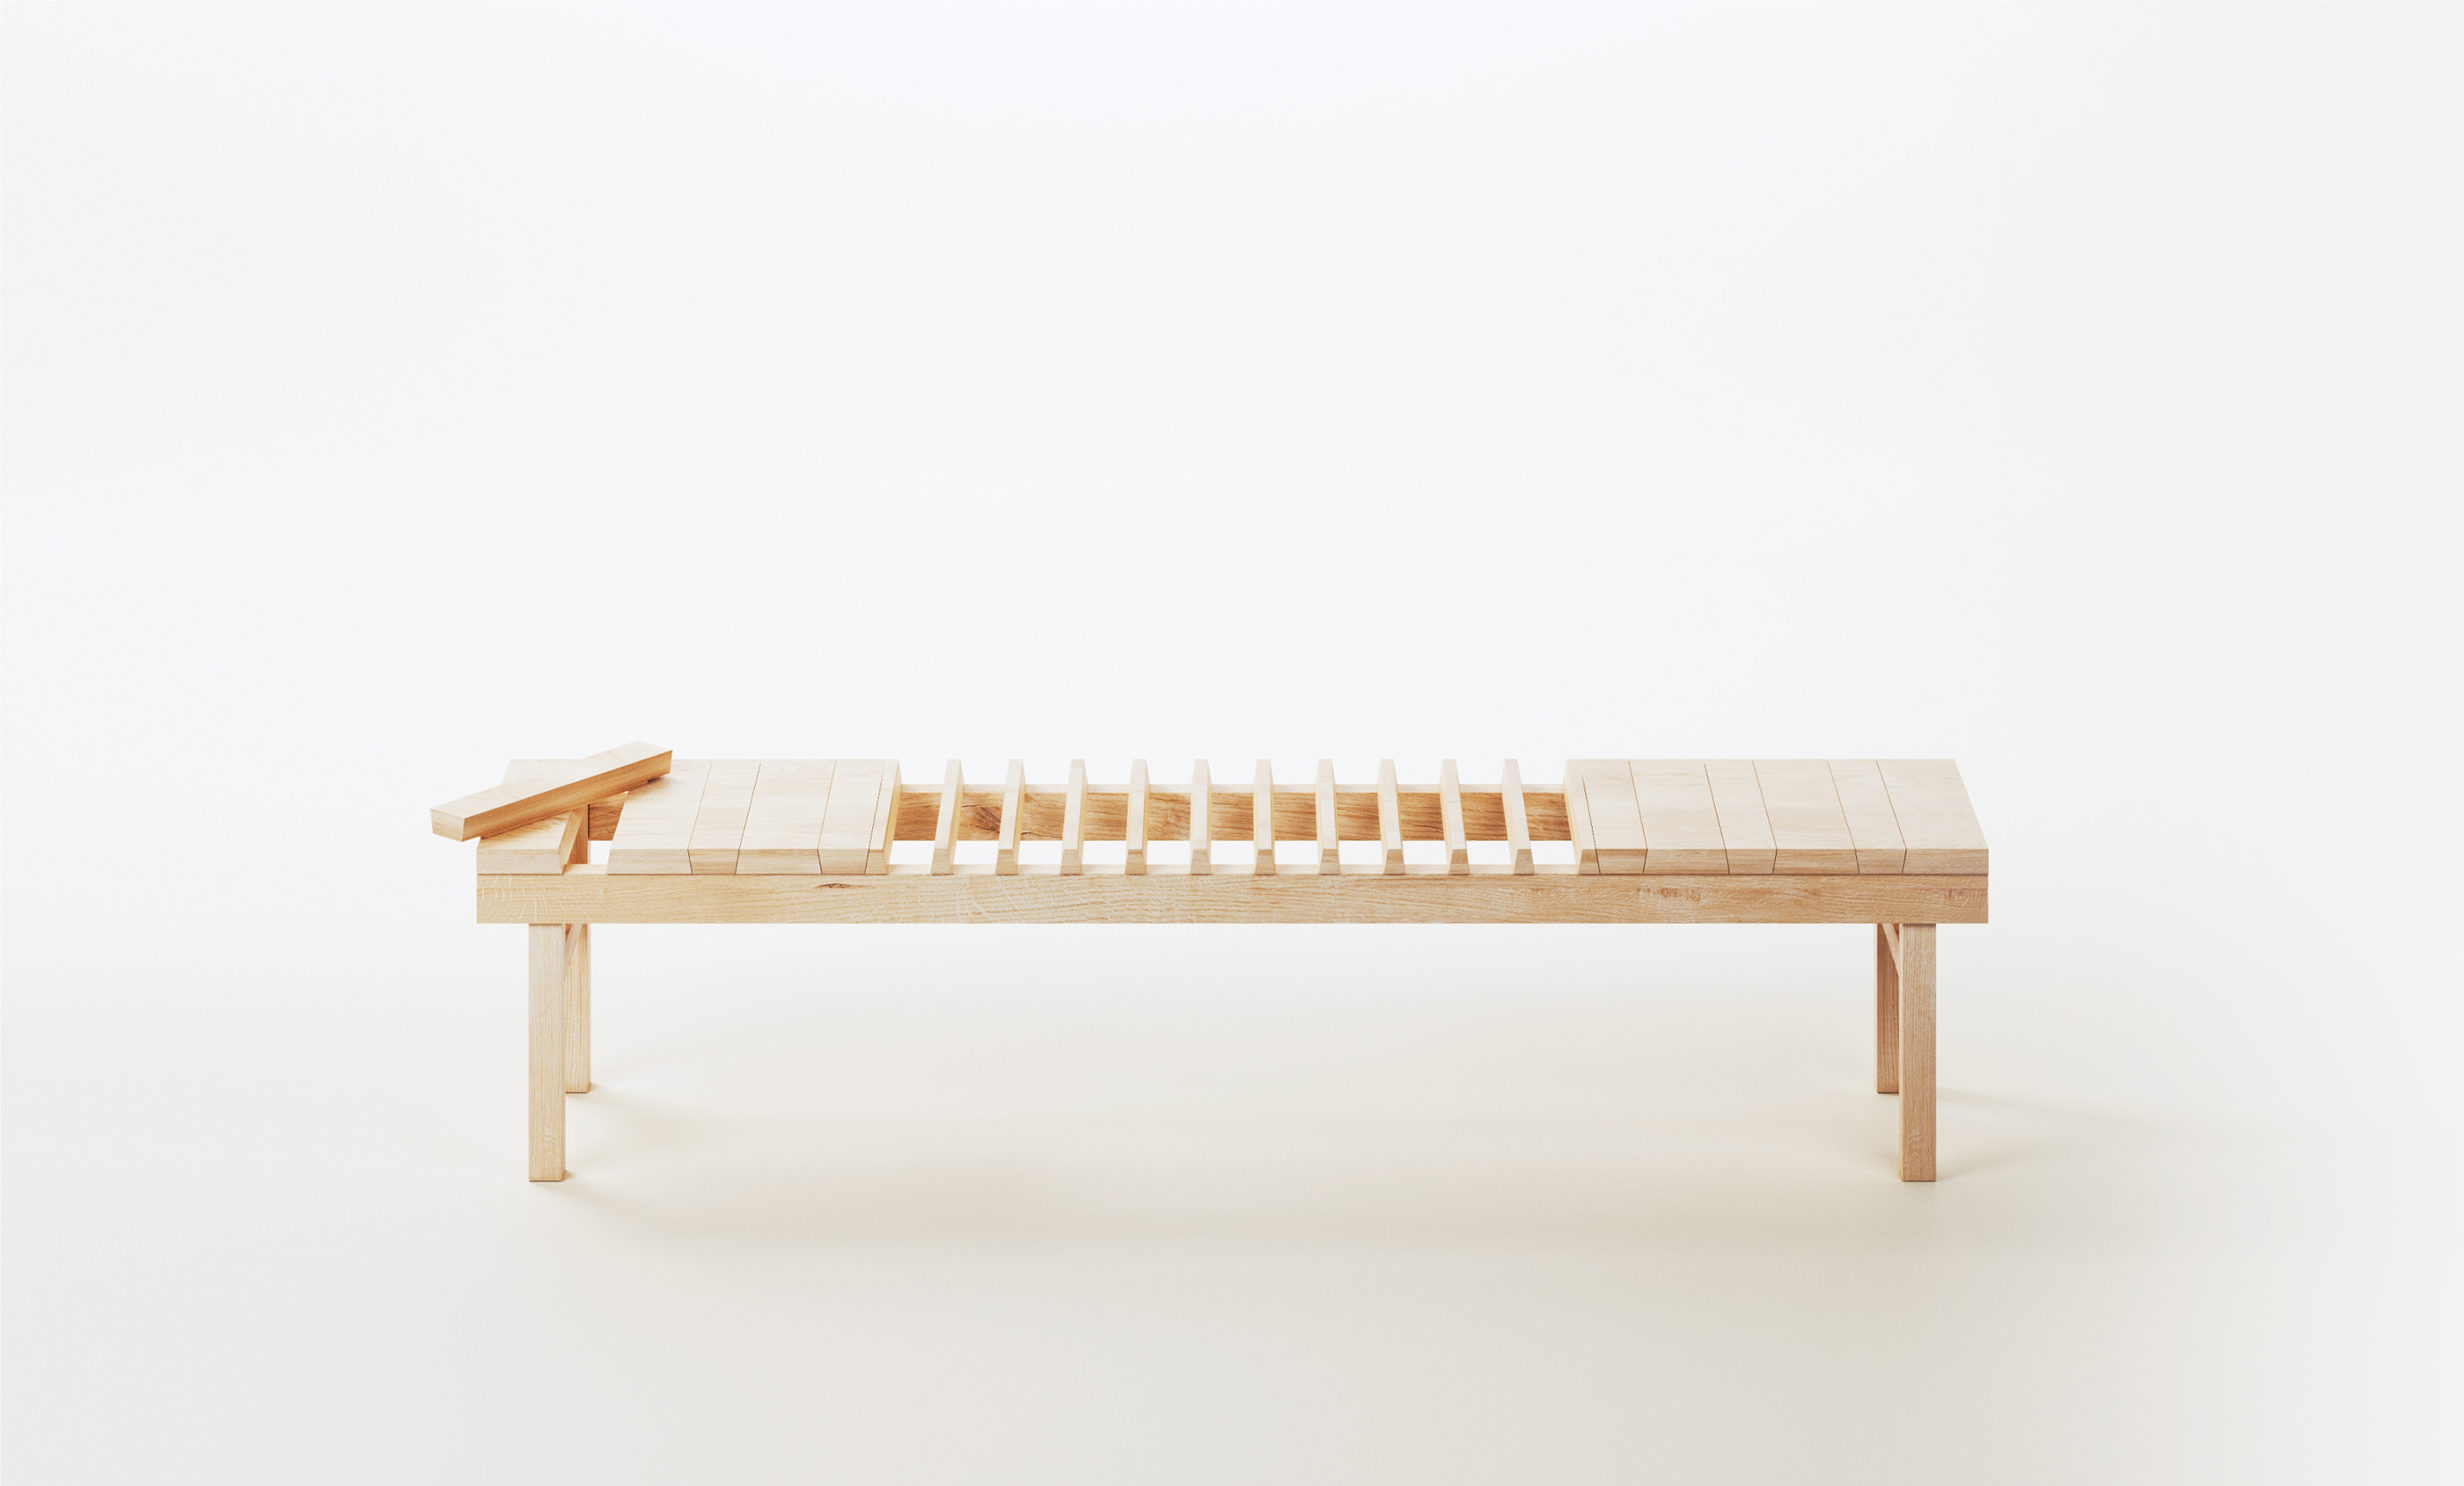 A—part le banc de distanciation par Oxymoro Design